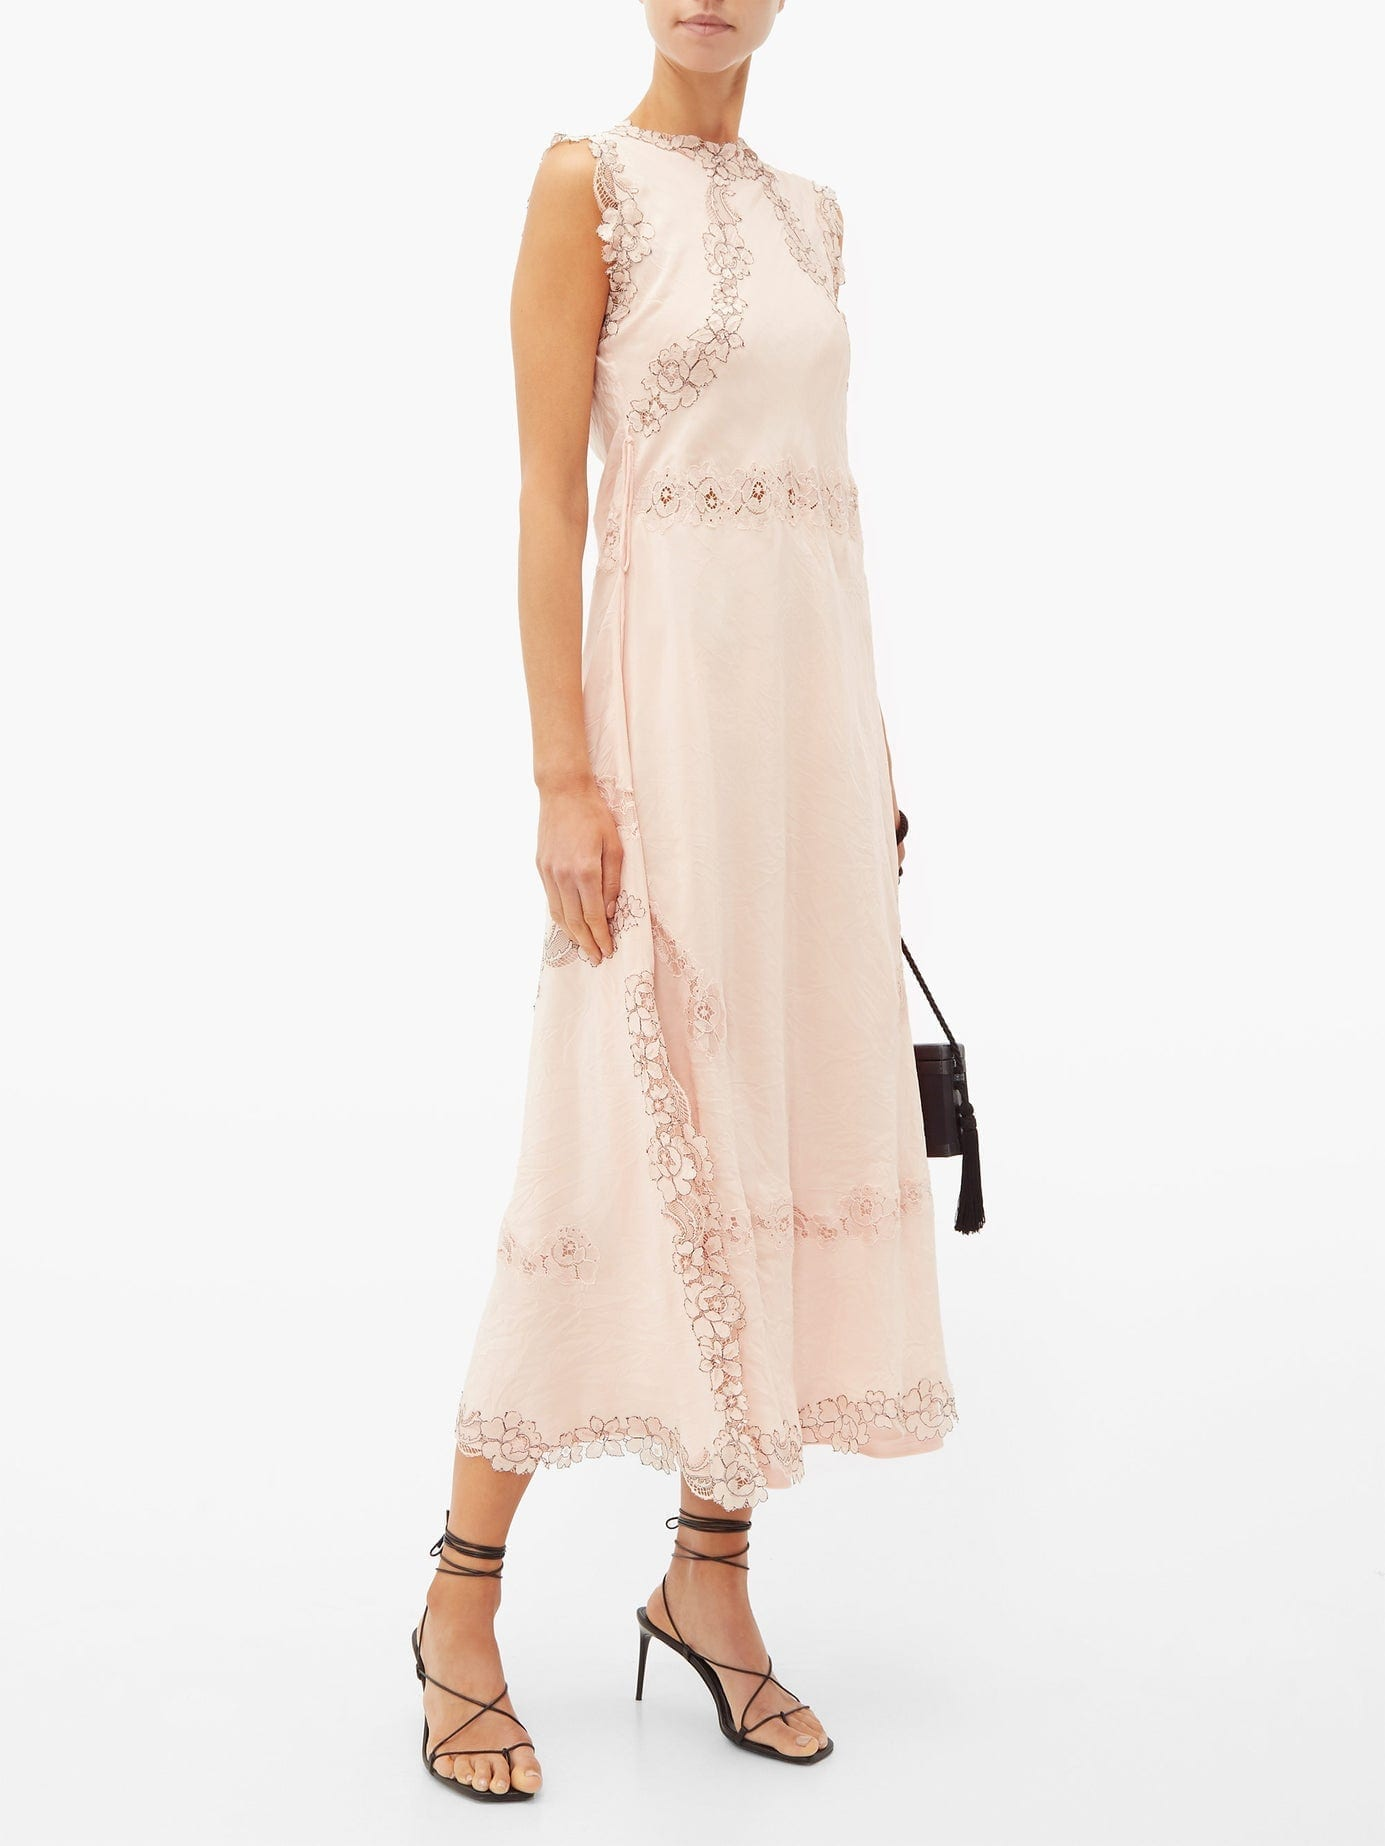 LOEWE Lace-insert Crinkled Dress